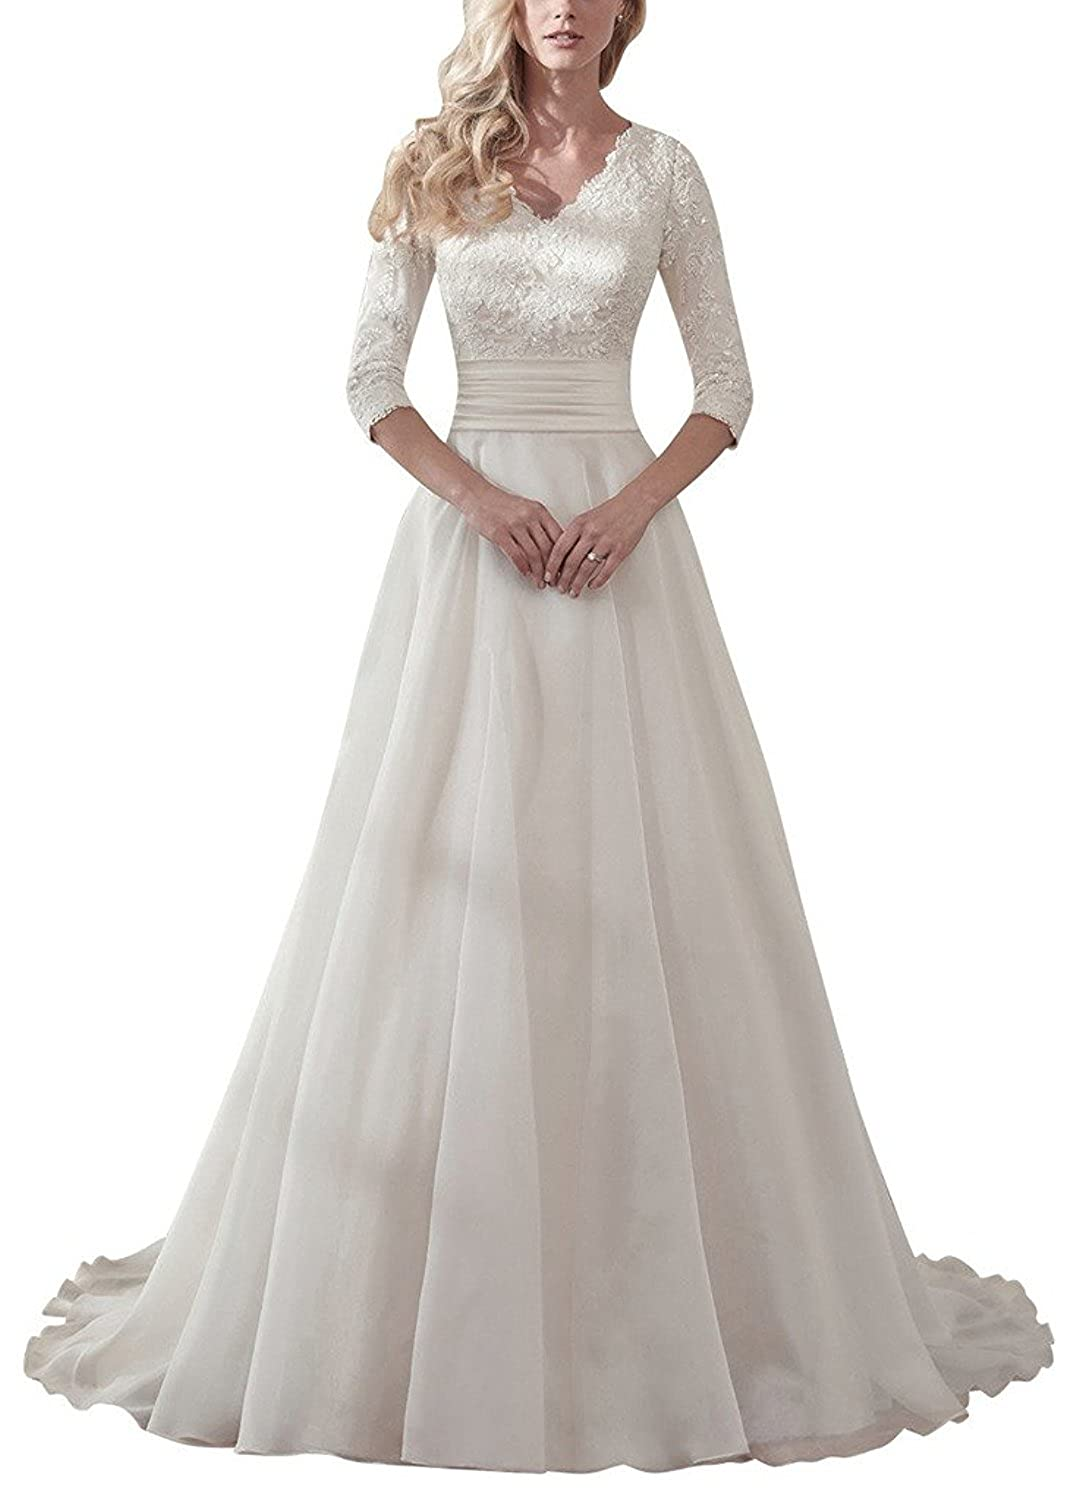 8aea38261 Lace Wedding Dress V Neck Bridal Dresses Aline Bridal Gowns Long Wedding  Gowns at Amazon Women's Clothing store: